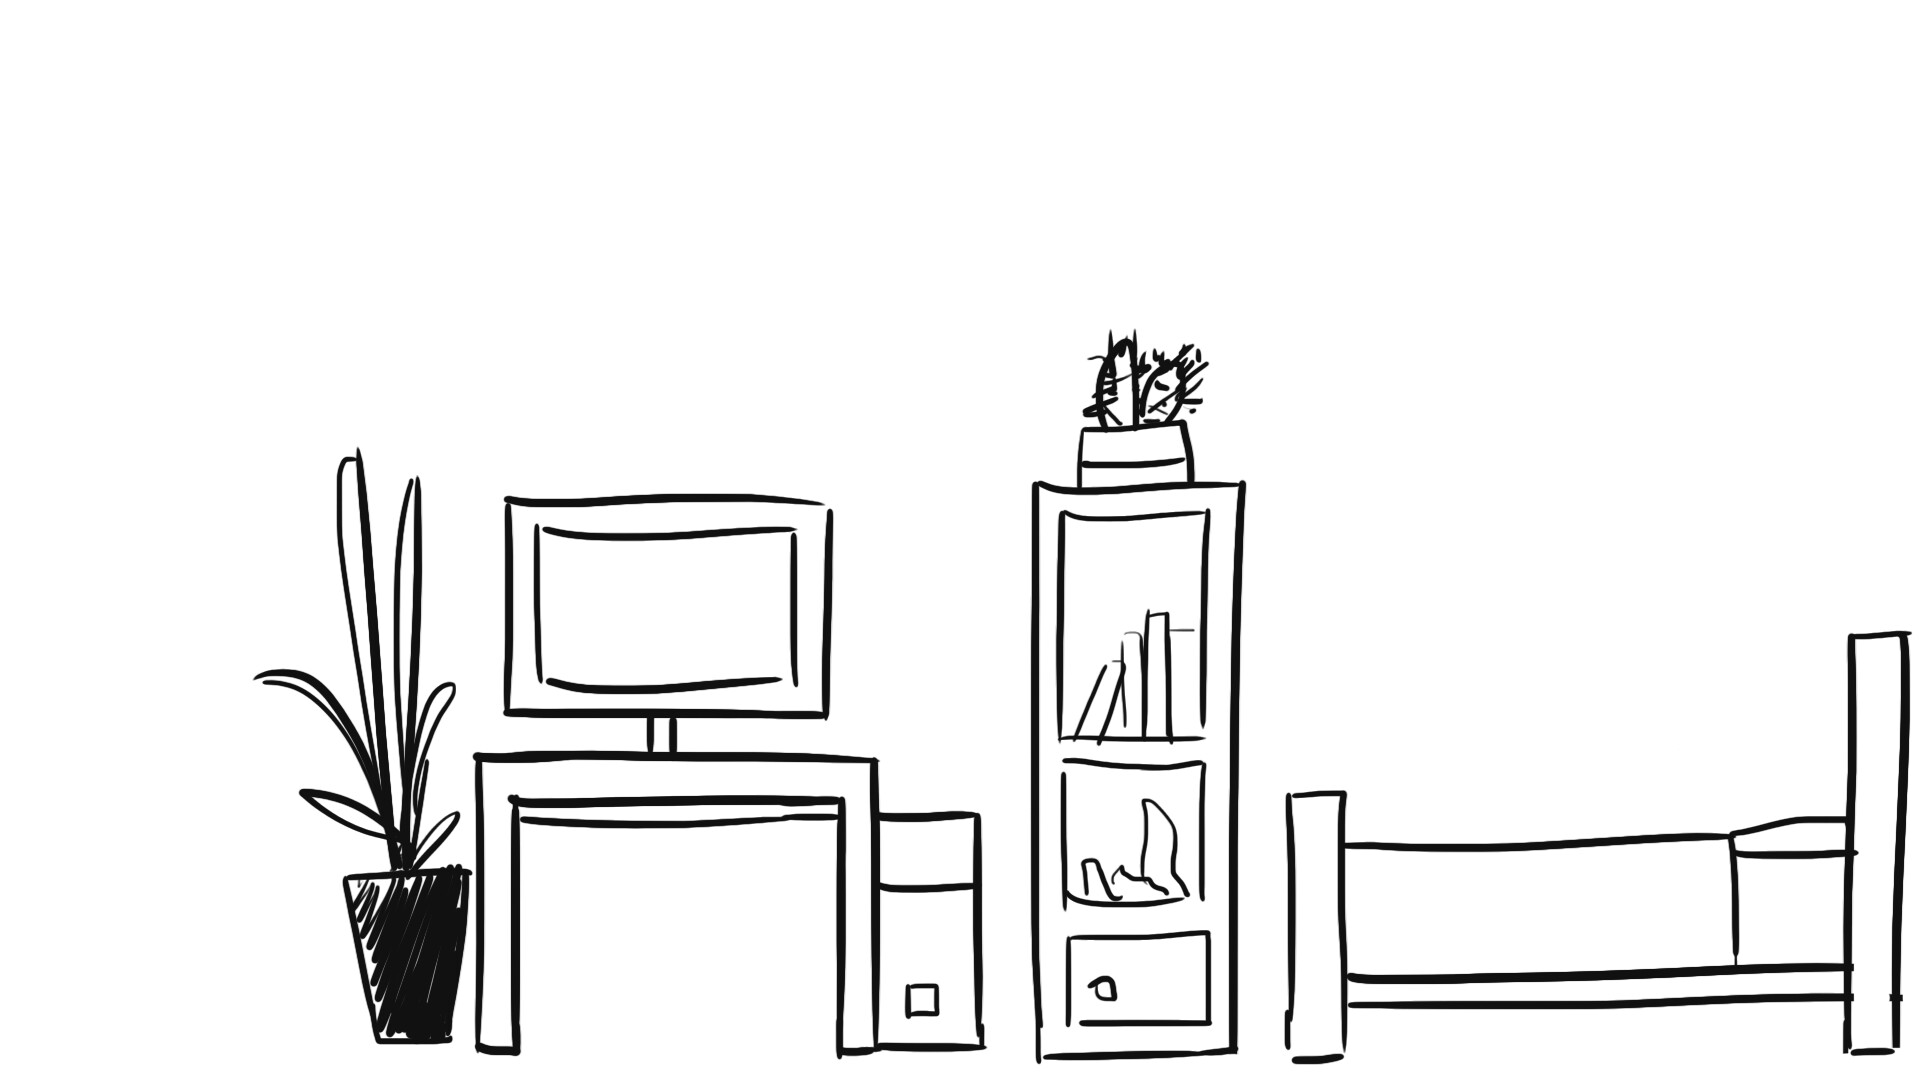 Rough sketch of Green's apartment furniture